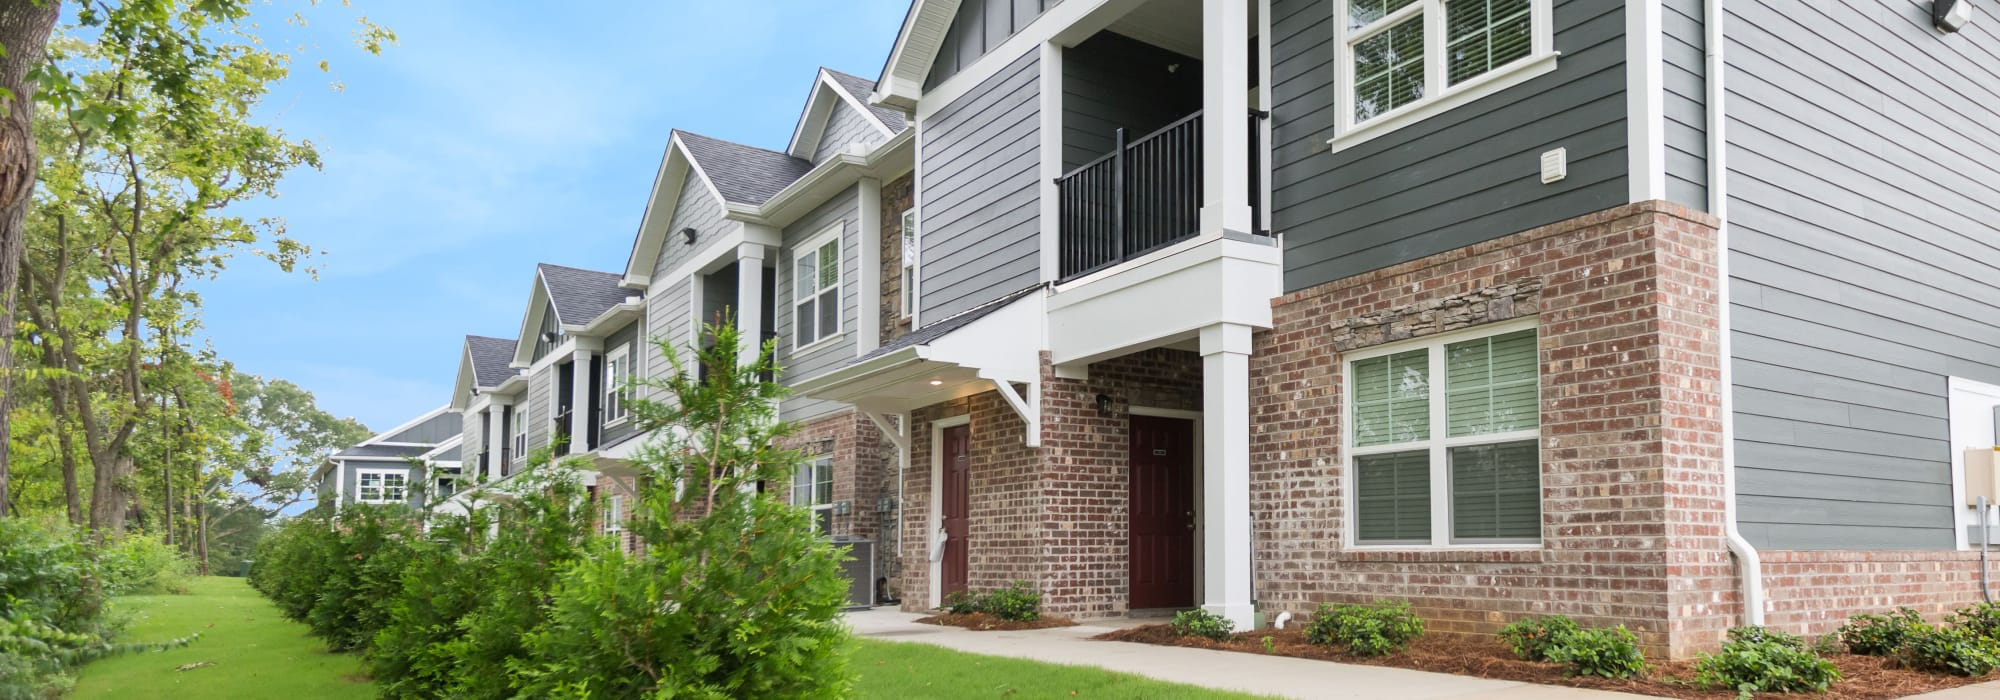 Apartments at Oakwood Estates in Hixson, Tennessee